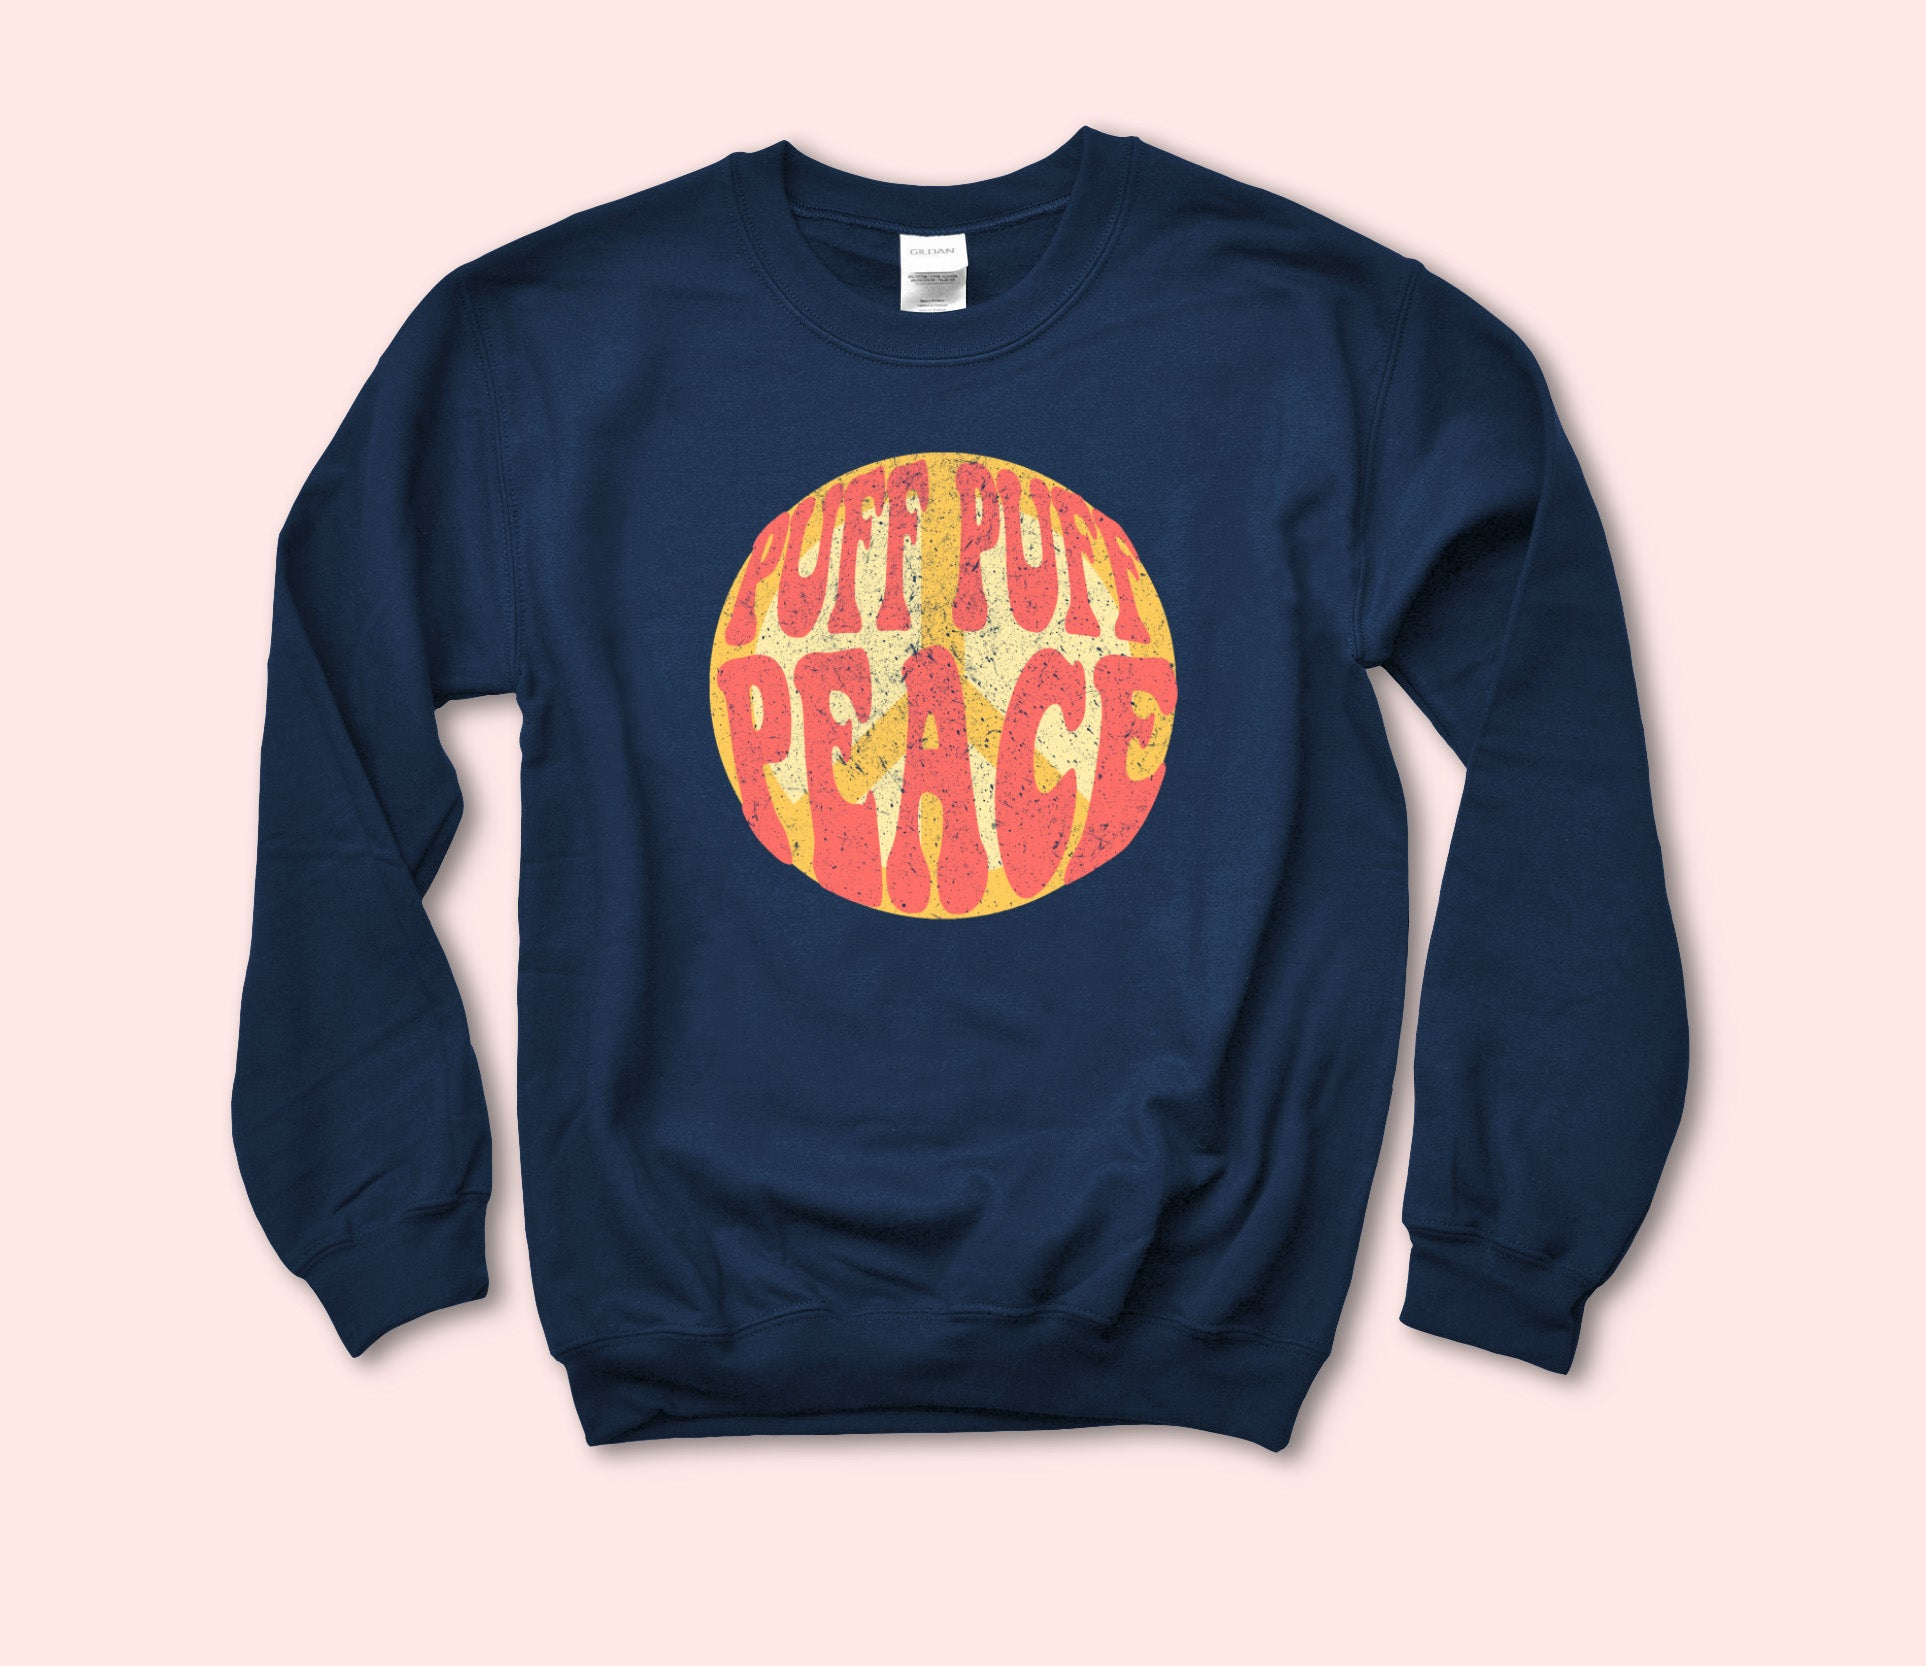 Puff Puff Peace Sweatshirt